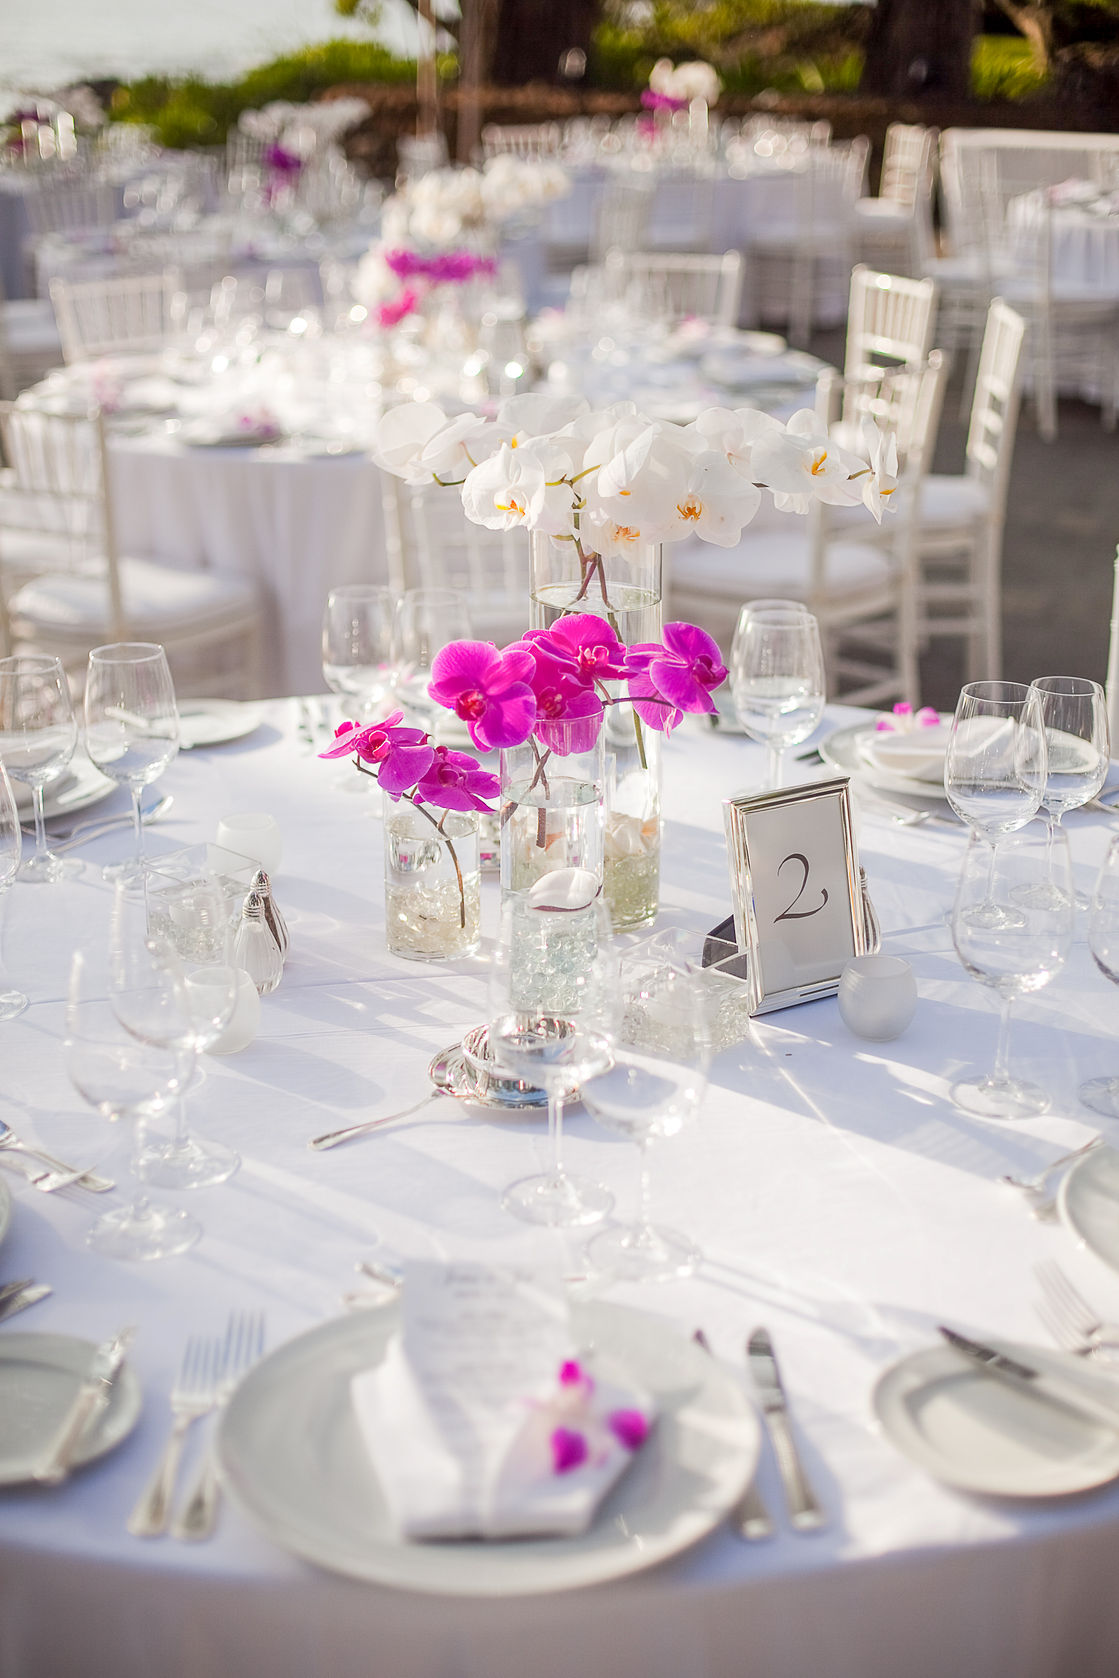 44306149 – tables setup for an outdoor event